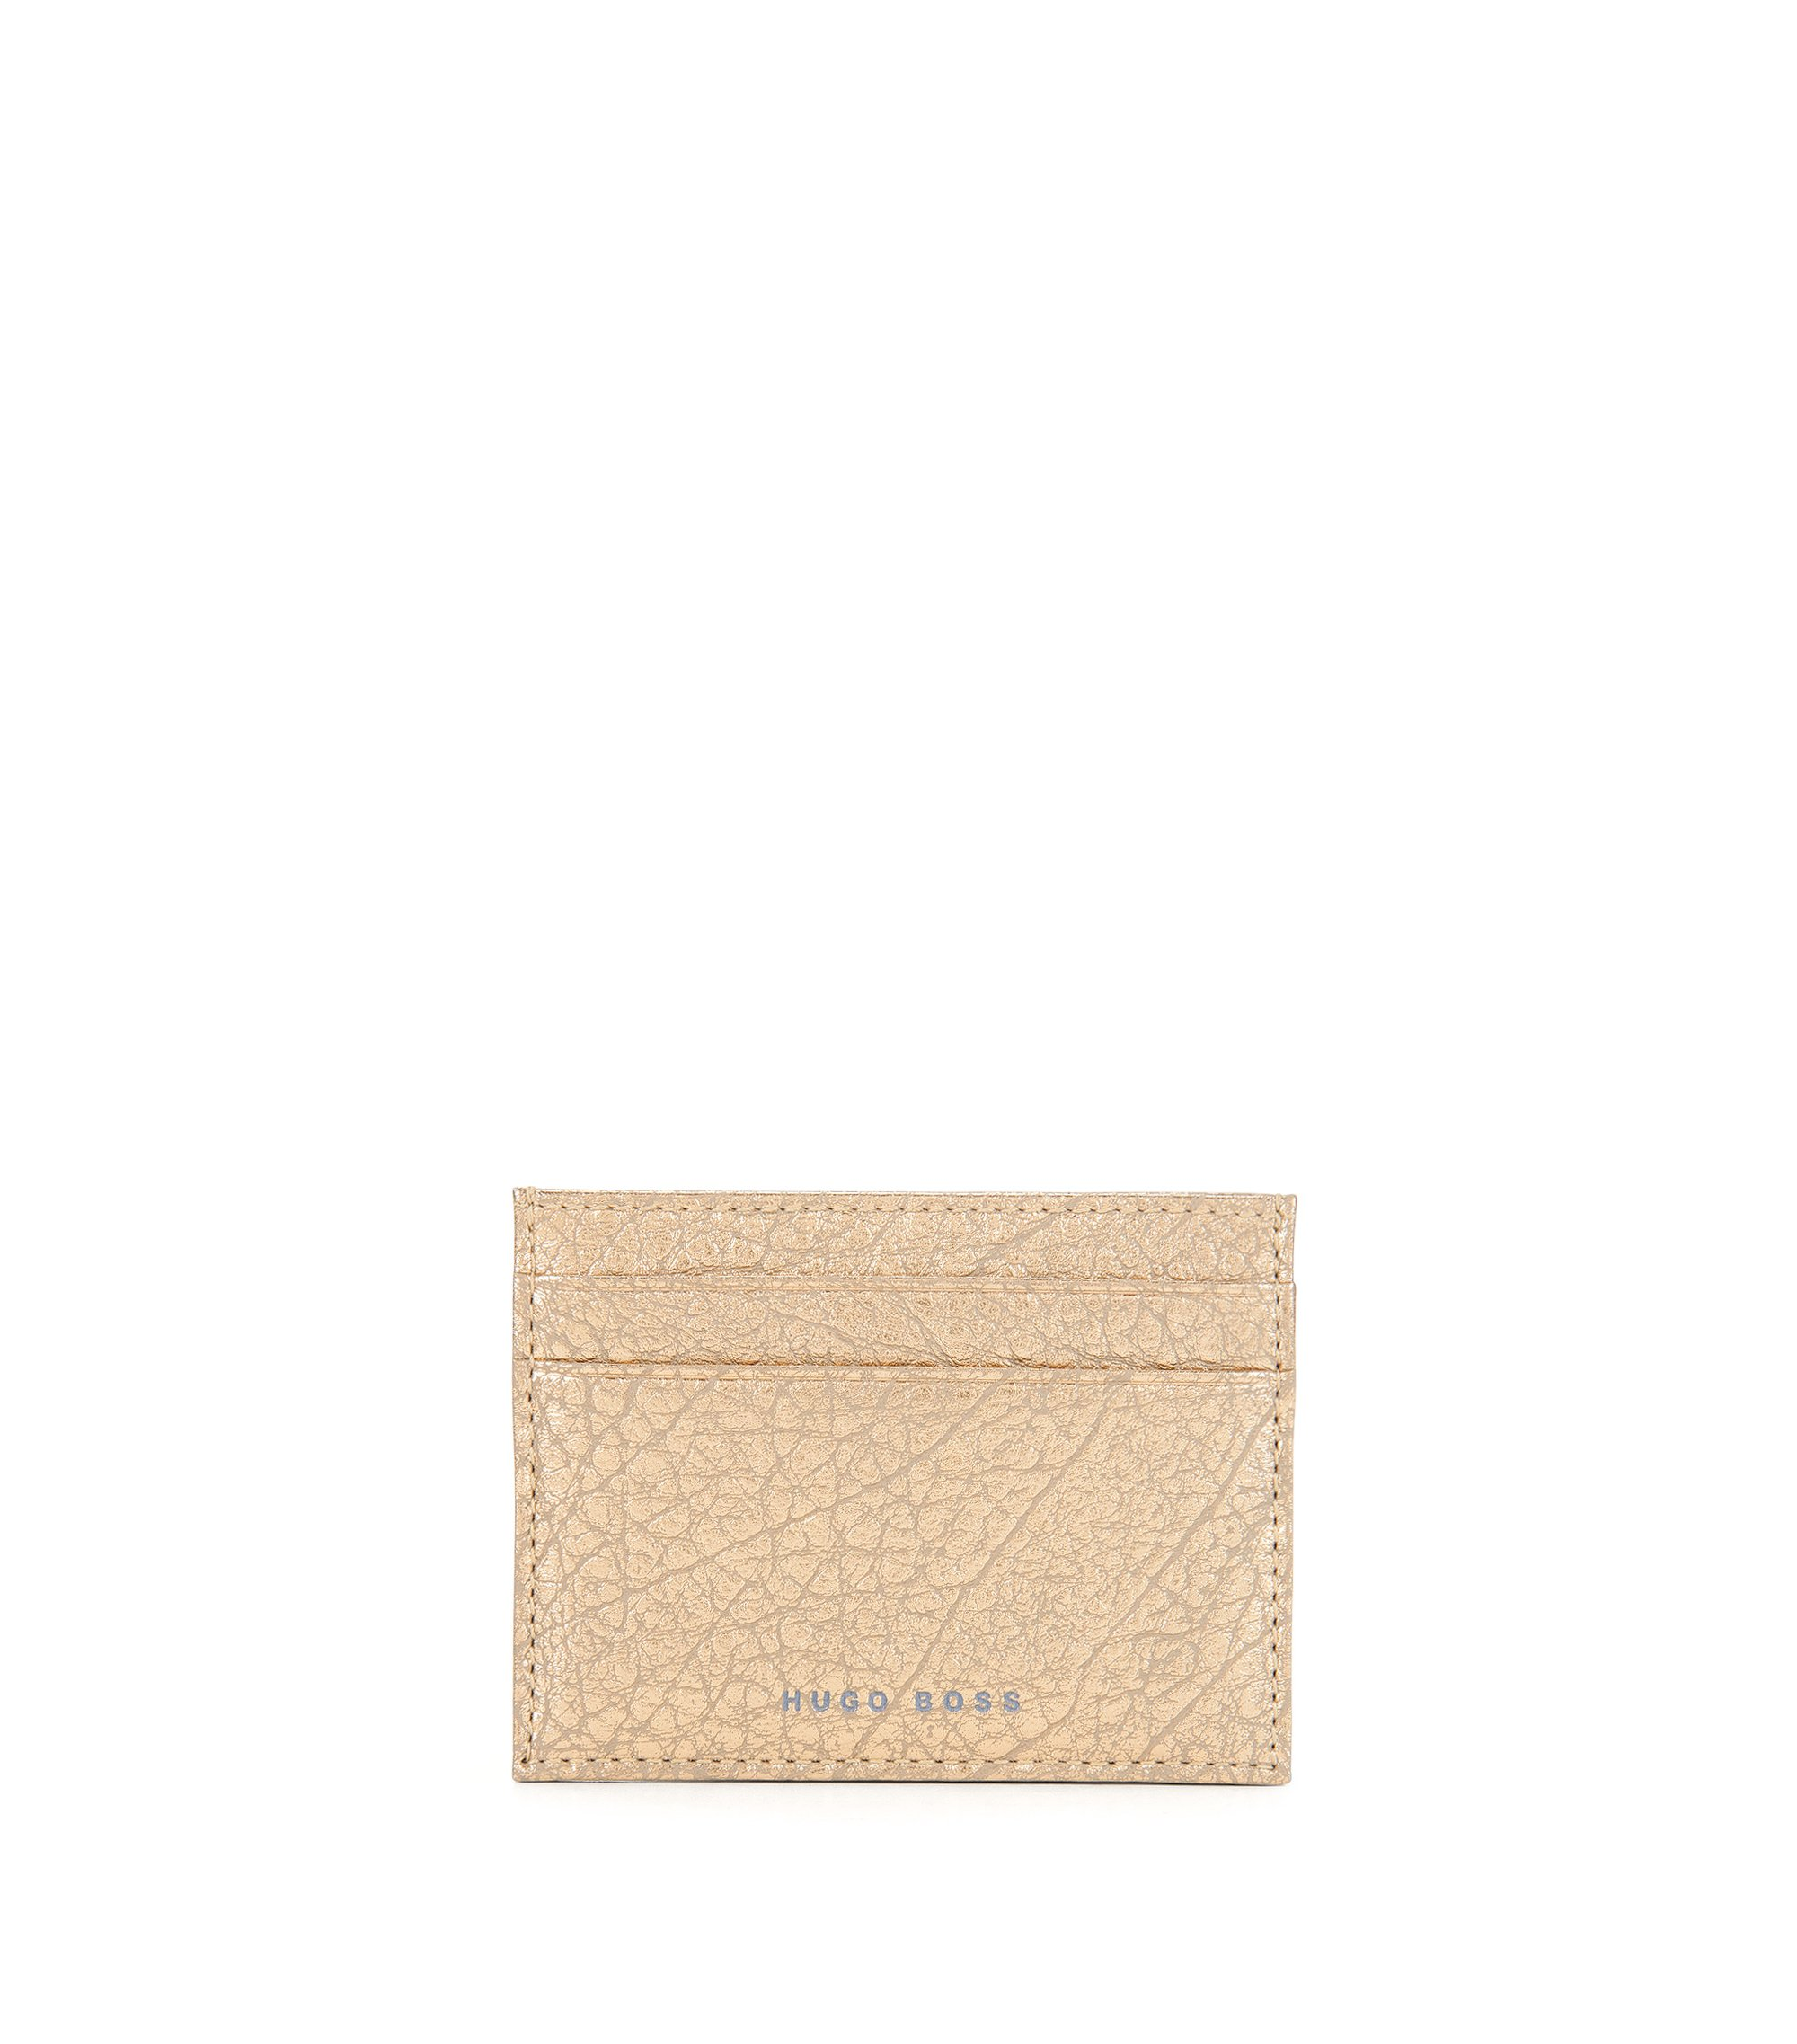 BOSS Bespoke Soft card holder in golden grained leather, Gold